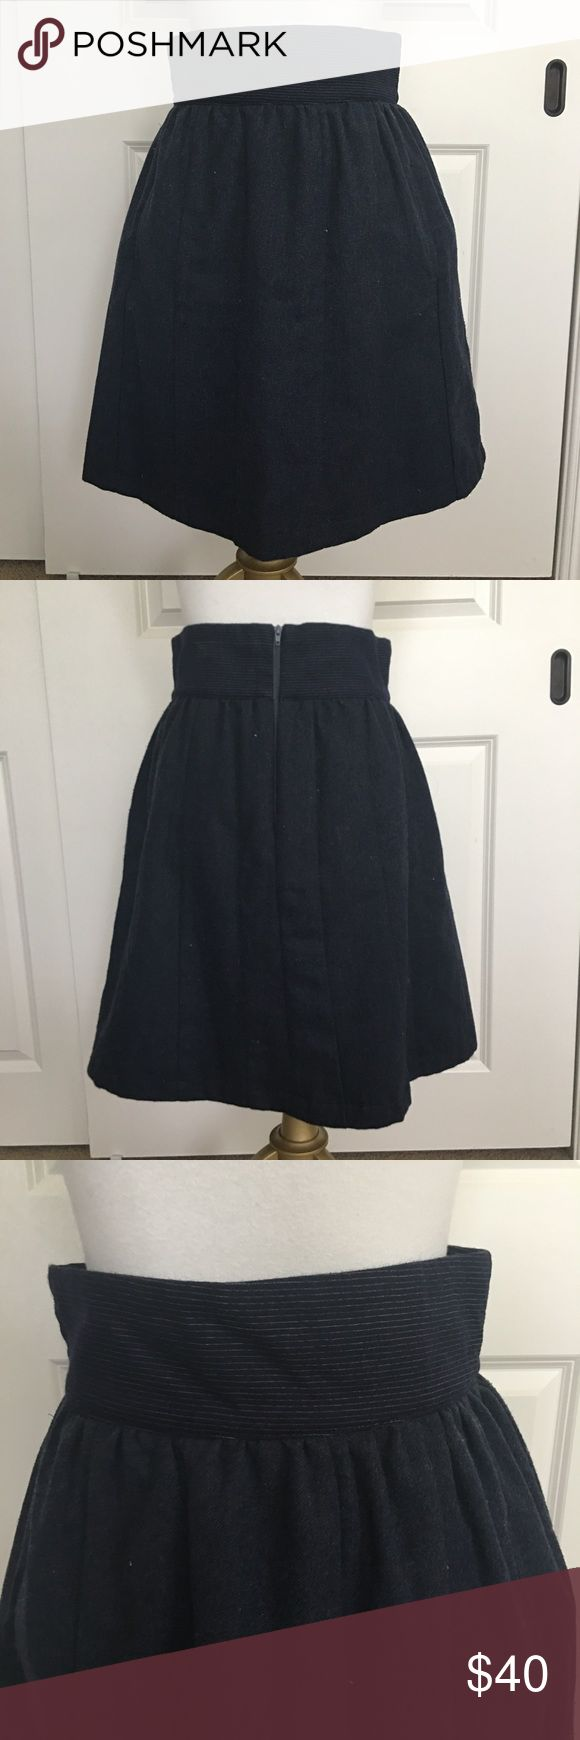 EUC Handcut by Preloved Butterfield Skirt EUC Handcut by Preloved Butterfield Skirt. Size Medium. Bought this beauty on consignment and so sad it doesn't fit me! Has slight vintage store smell. 🤗 Made from dark blue vintage wool trousers, fully lined (fun red lining) and pockets! Back zip closure. Since it's wool material, there is not a lot of stretch. Measurements (approximate and unstretched) are waist: 13.75' and length 21.5'. Made in Canada. Anthropologie Skirts